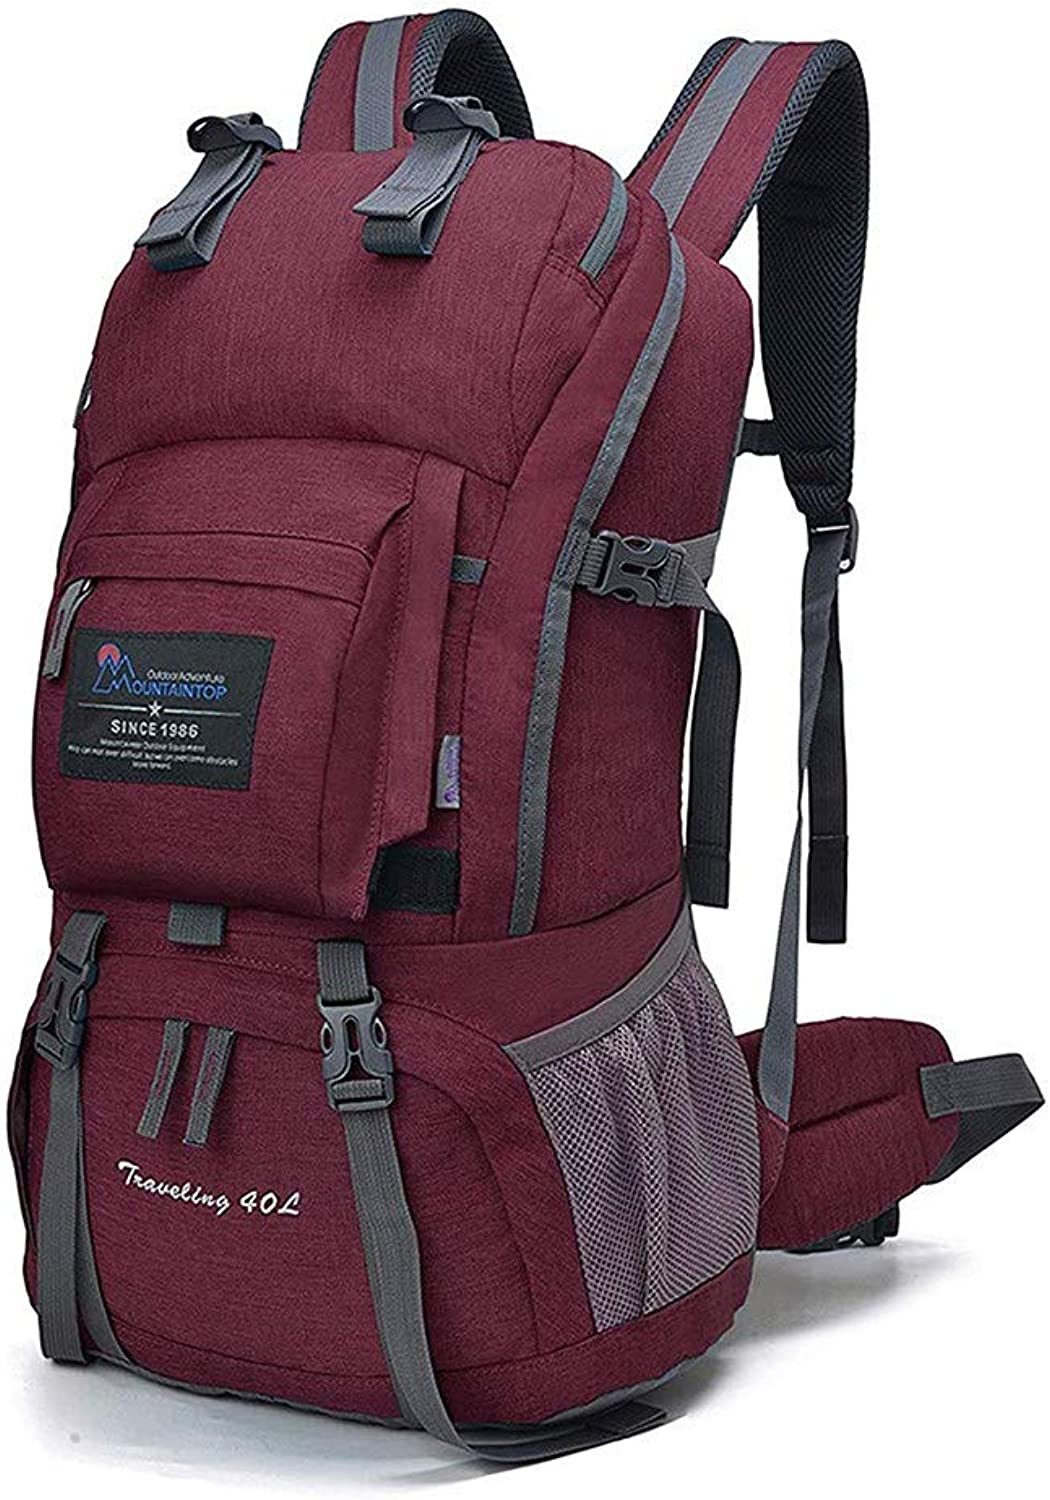 PinShang Outdoor Double Shoulder Unisex Backpacks for Hiking Camping Purple Red